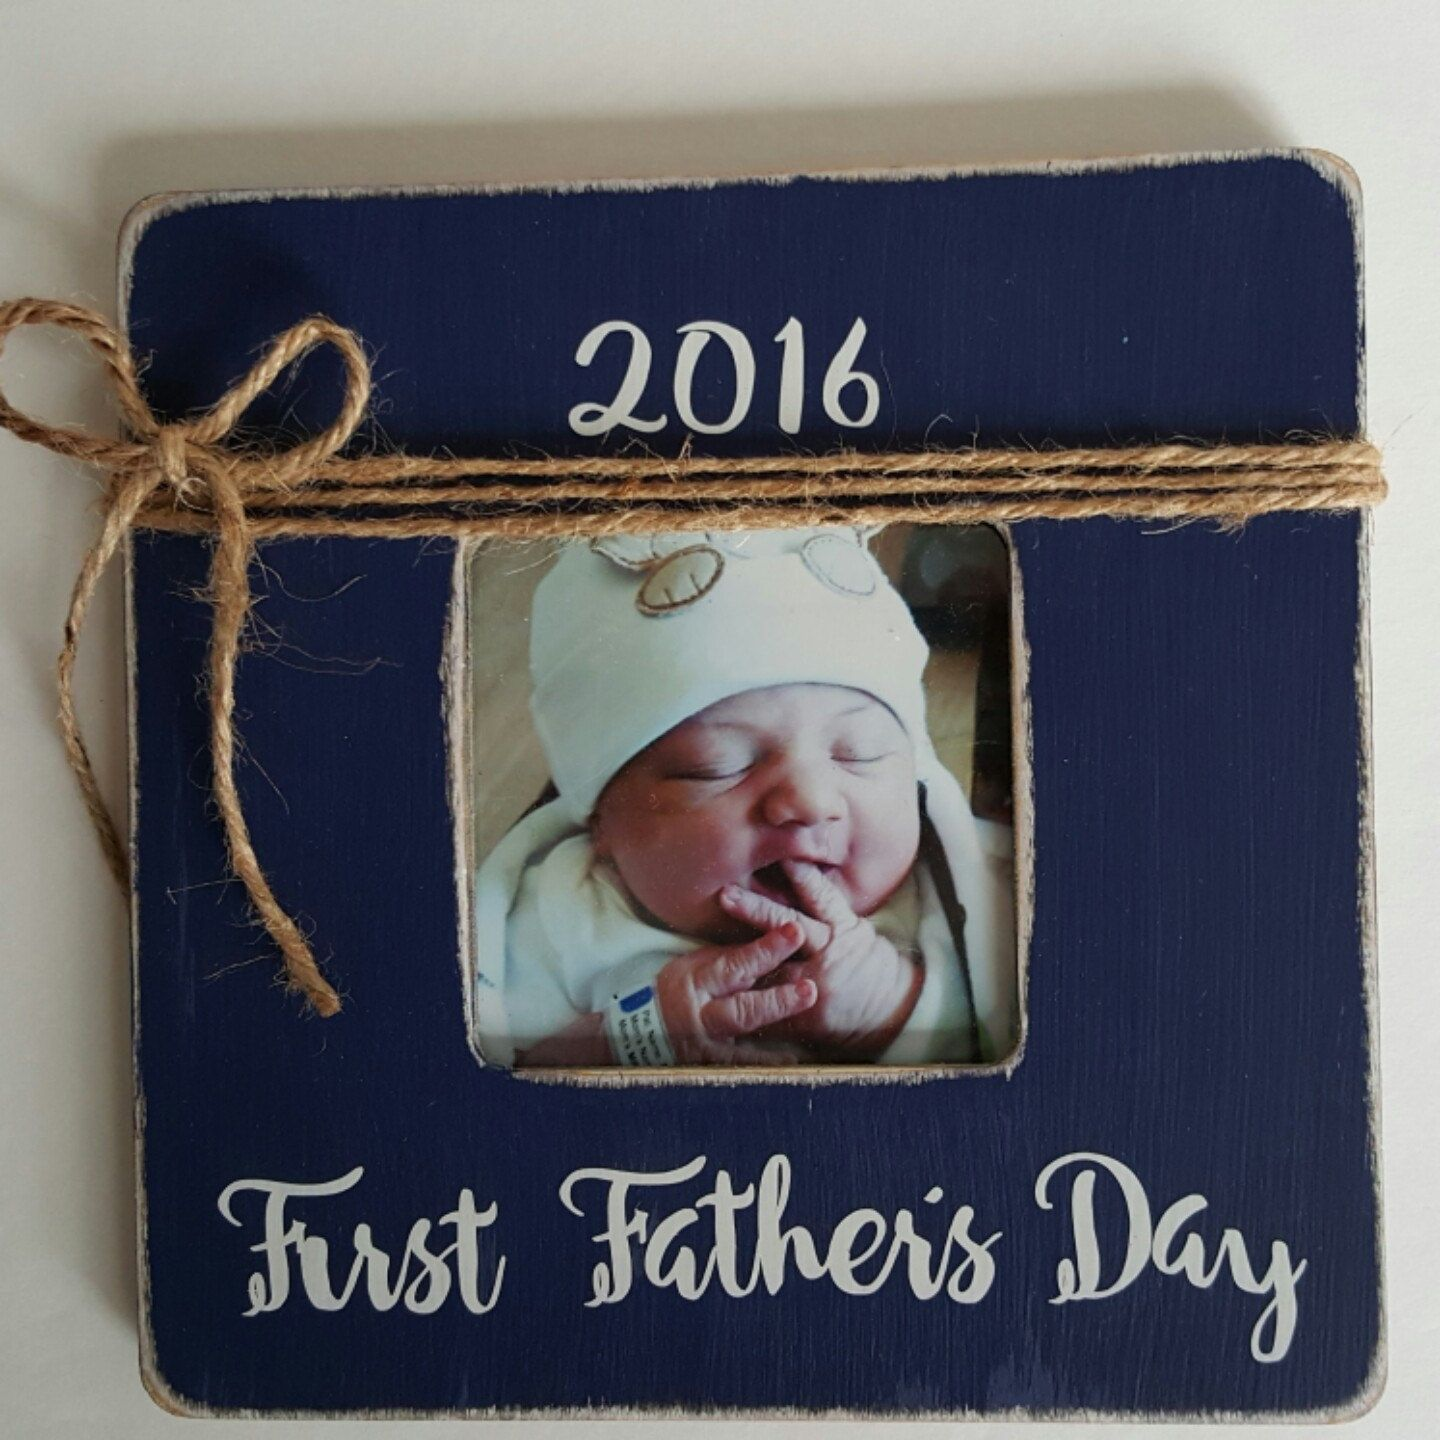 Daddys First Fathers Day Part - 32: First Fatheru0027s Day Frame, New Daddy Picture Frame, Navy Frame, Fatheru0027s Day  Photo Frame